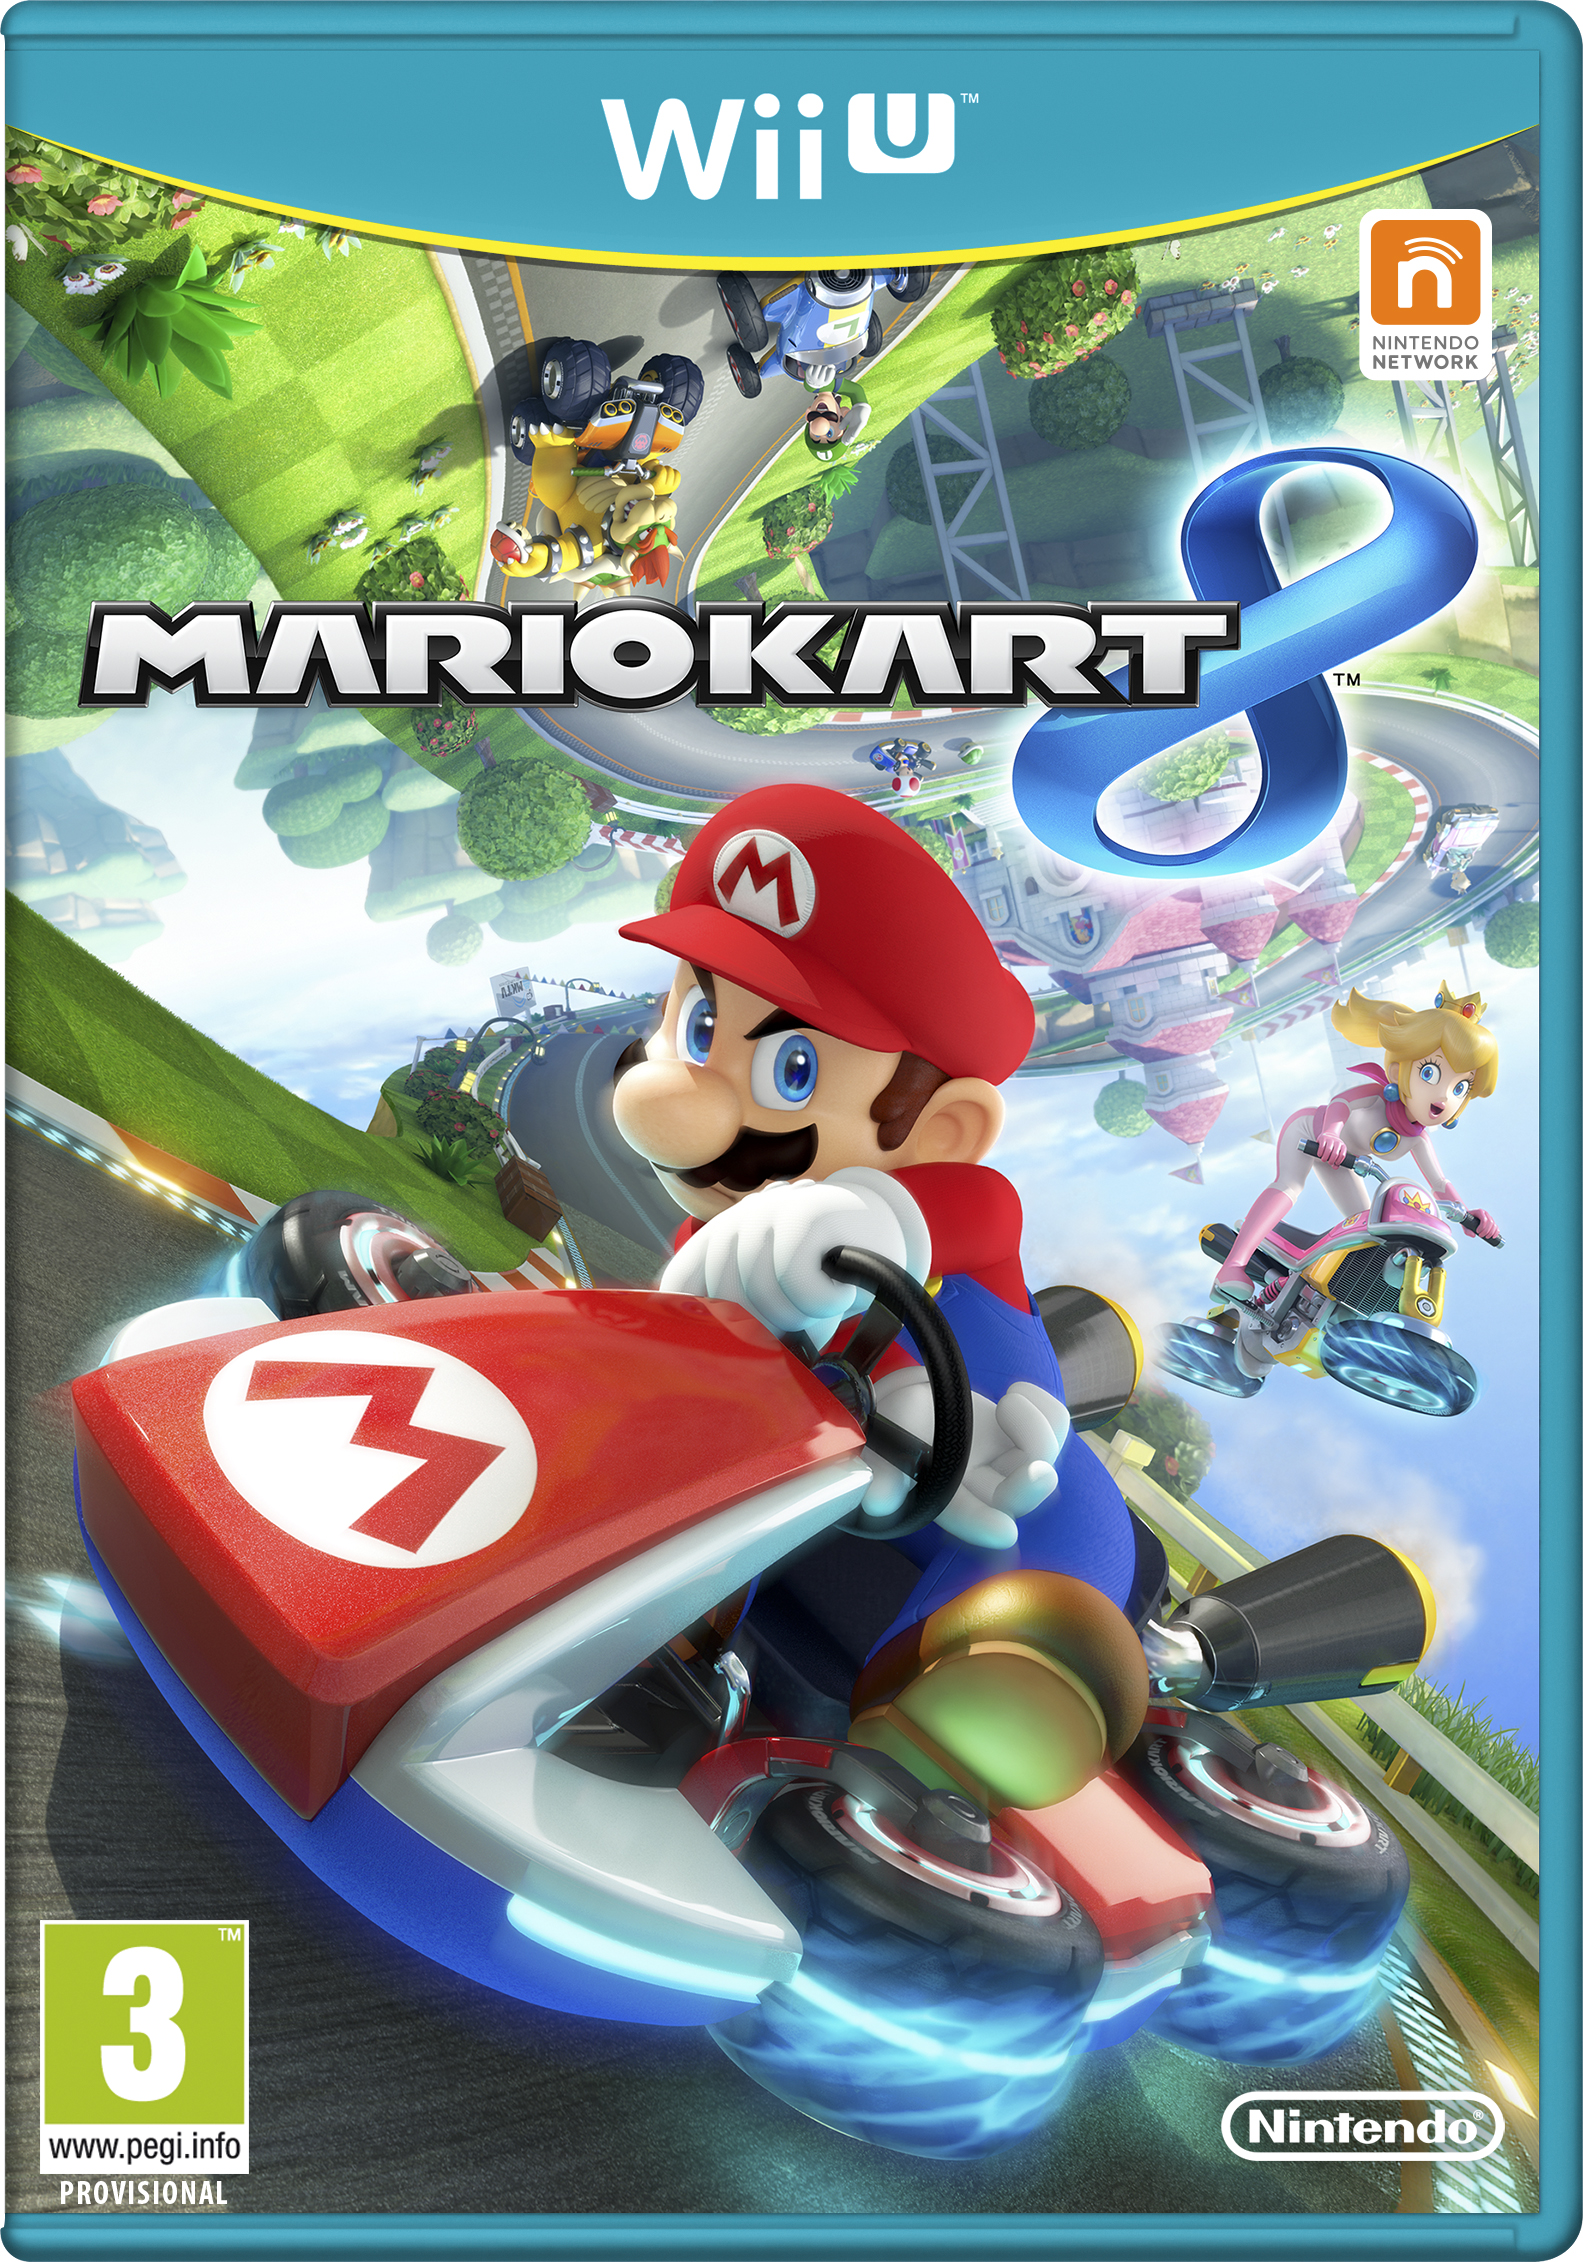 Mario kart ds play as shy guy dating